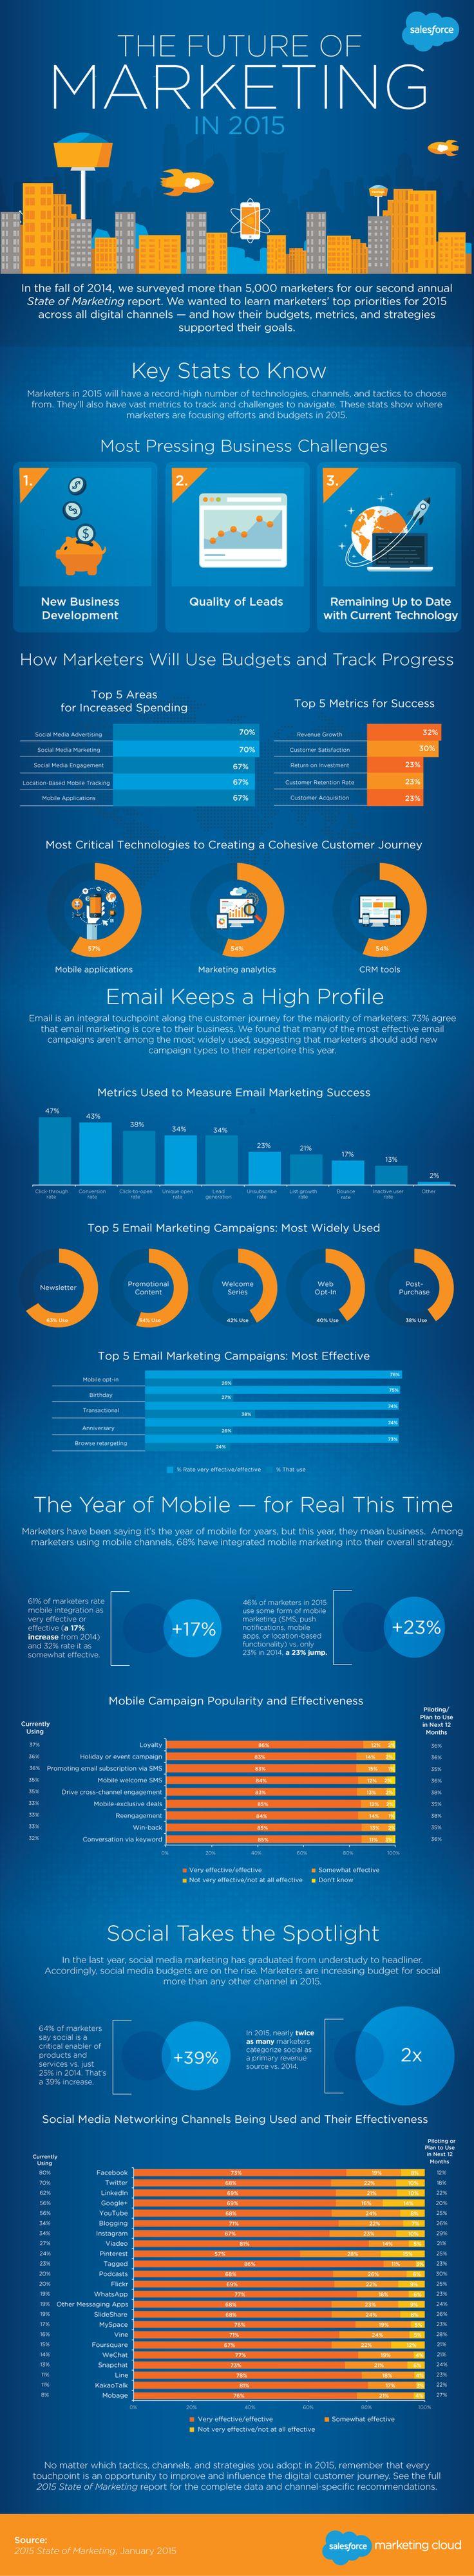 We Surveyed 5,000+ Marketers. Here's What They Said About Marketing in 2015 | @salesforce  #infographic #marketing